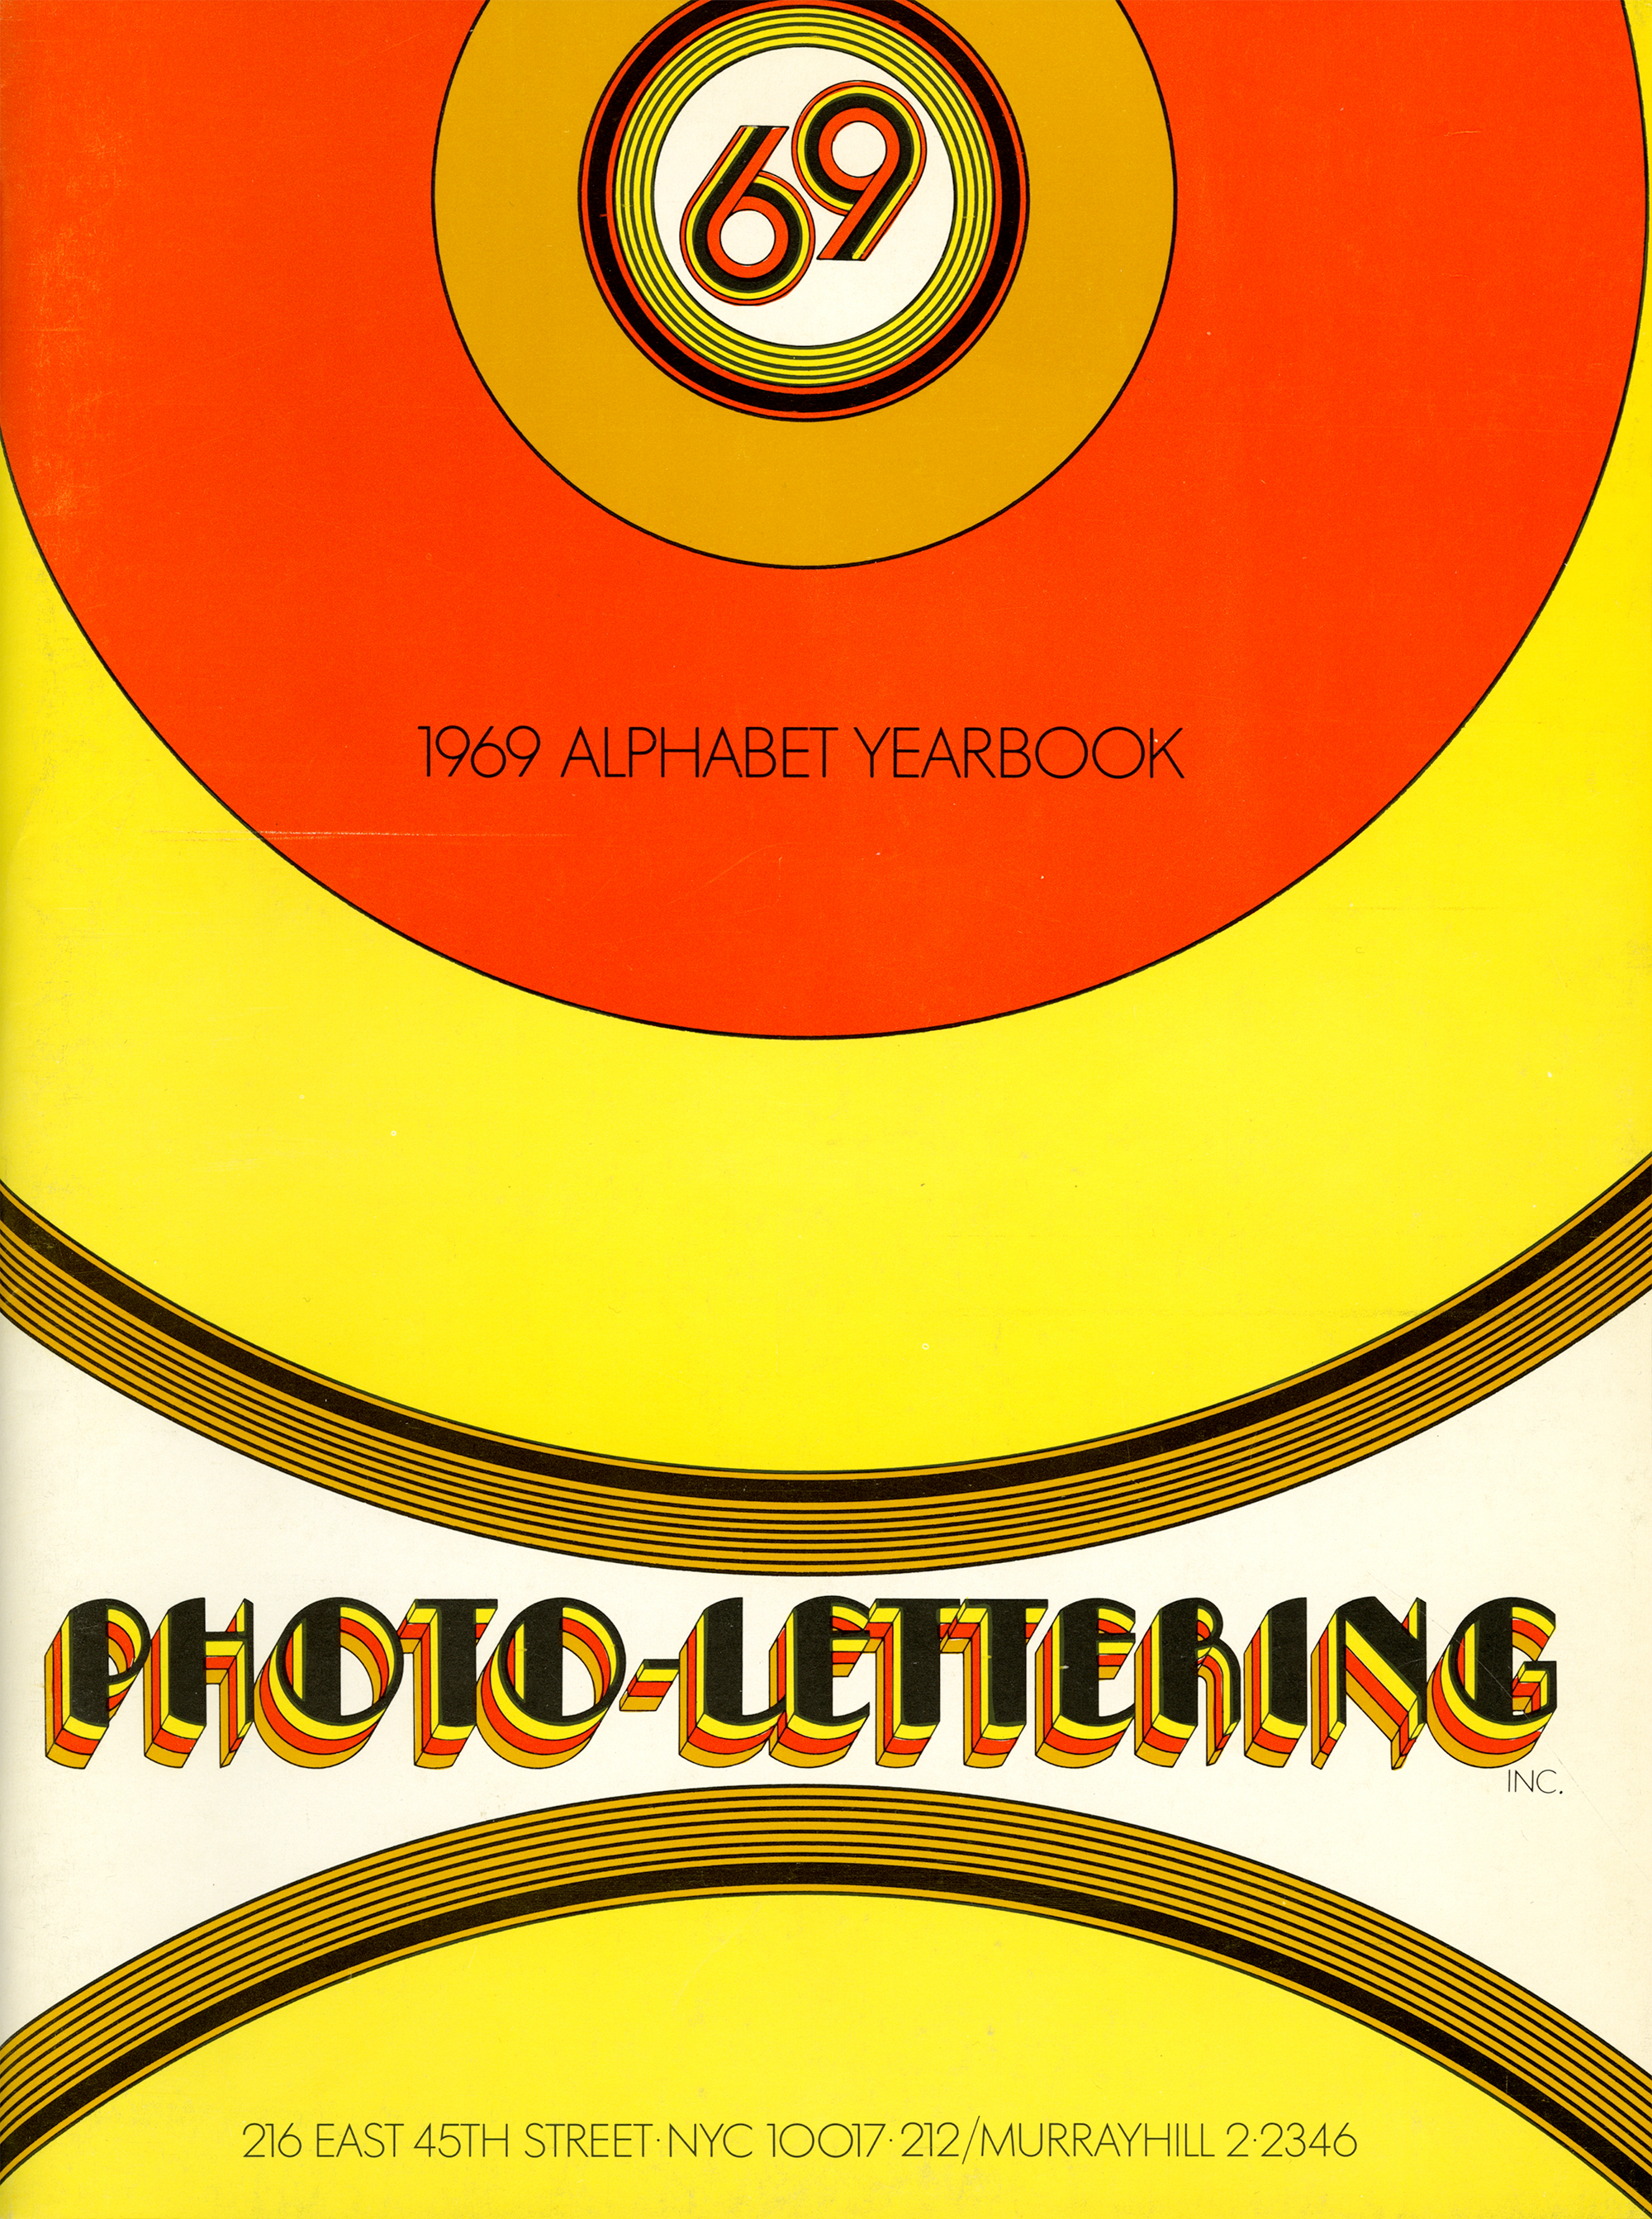 photo-lettering-c.png